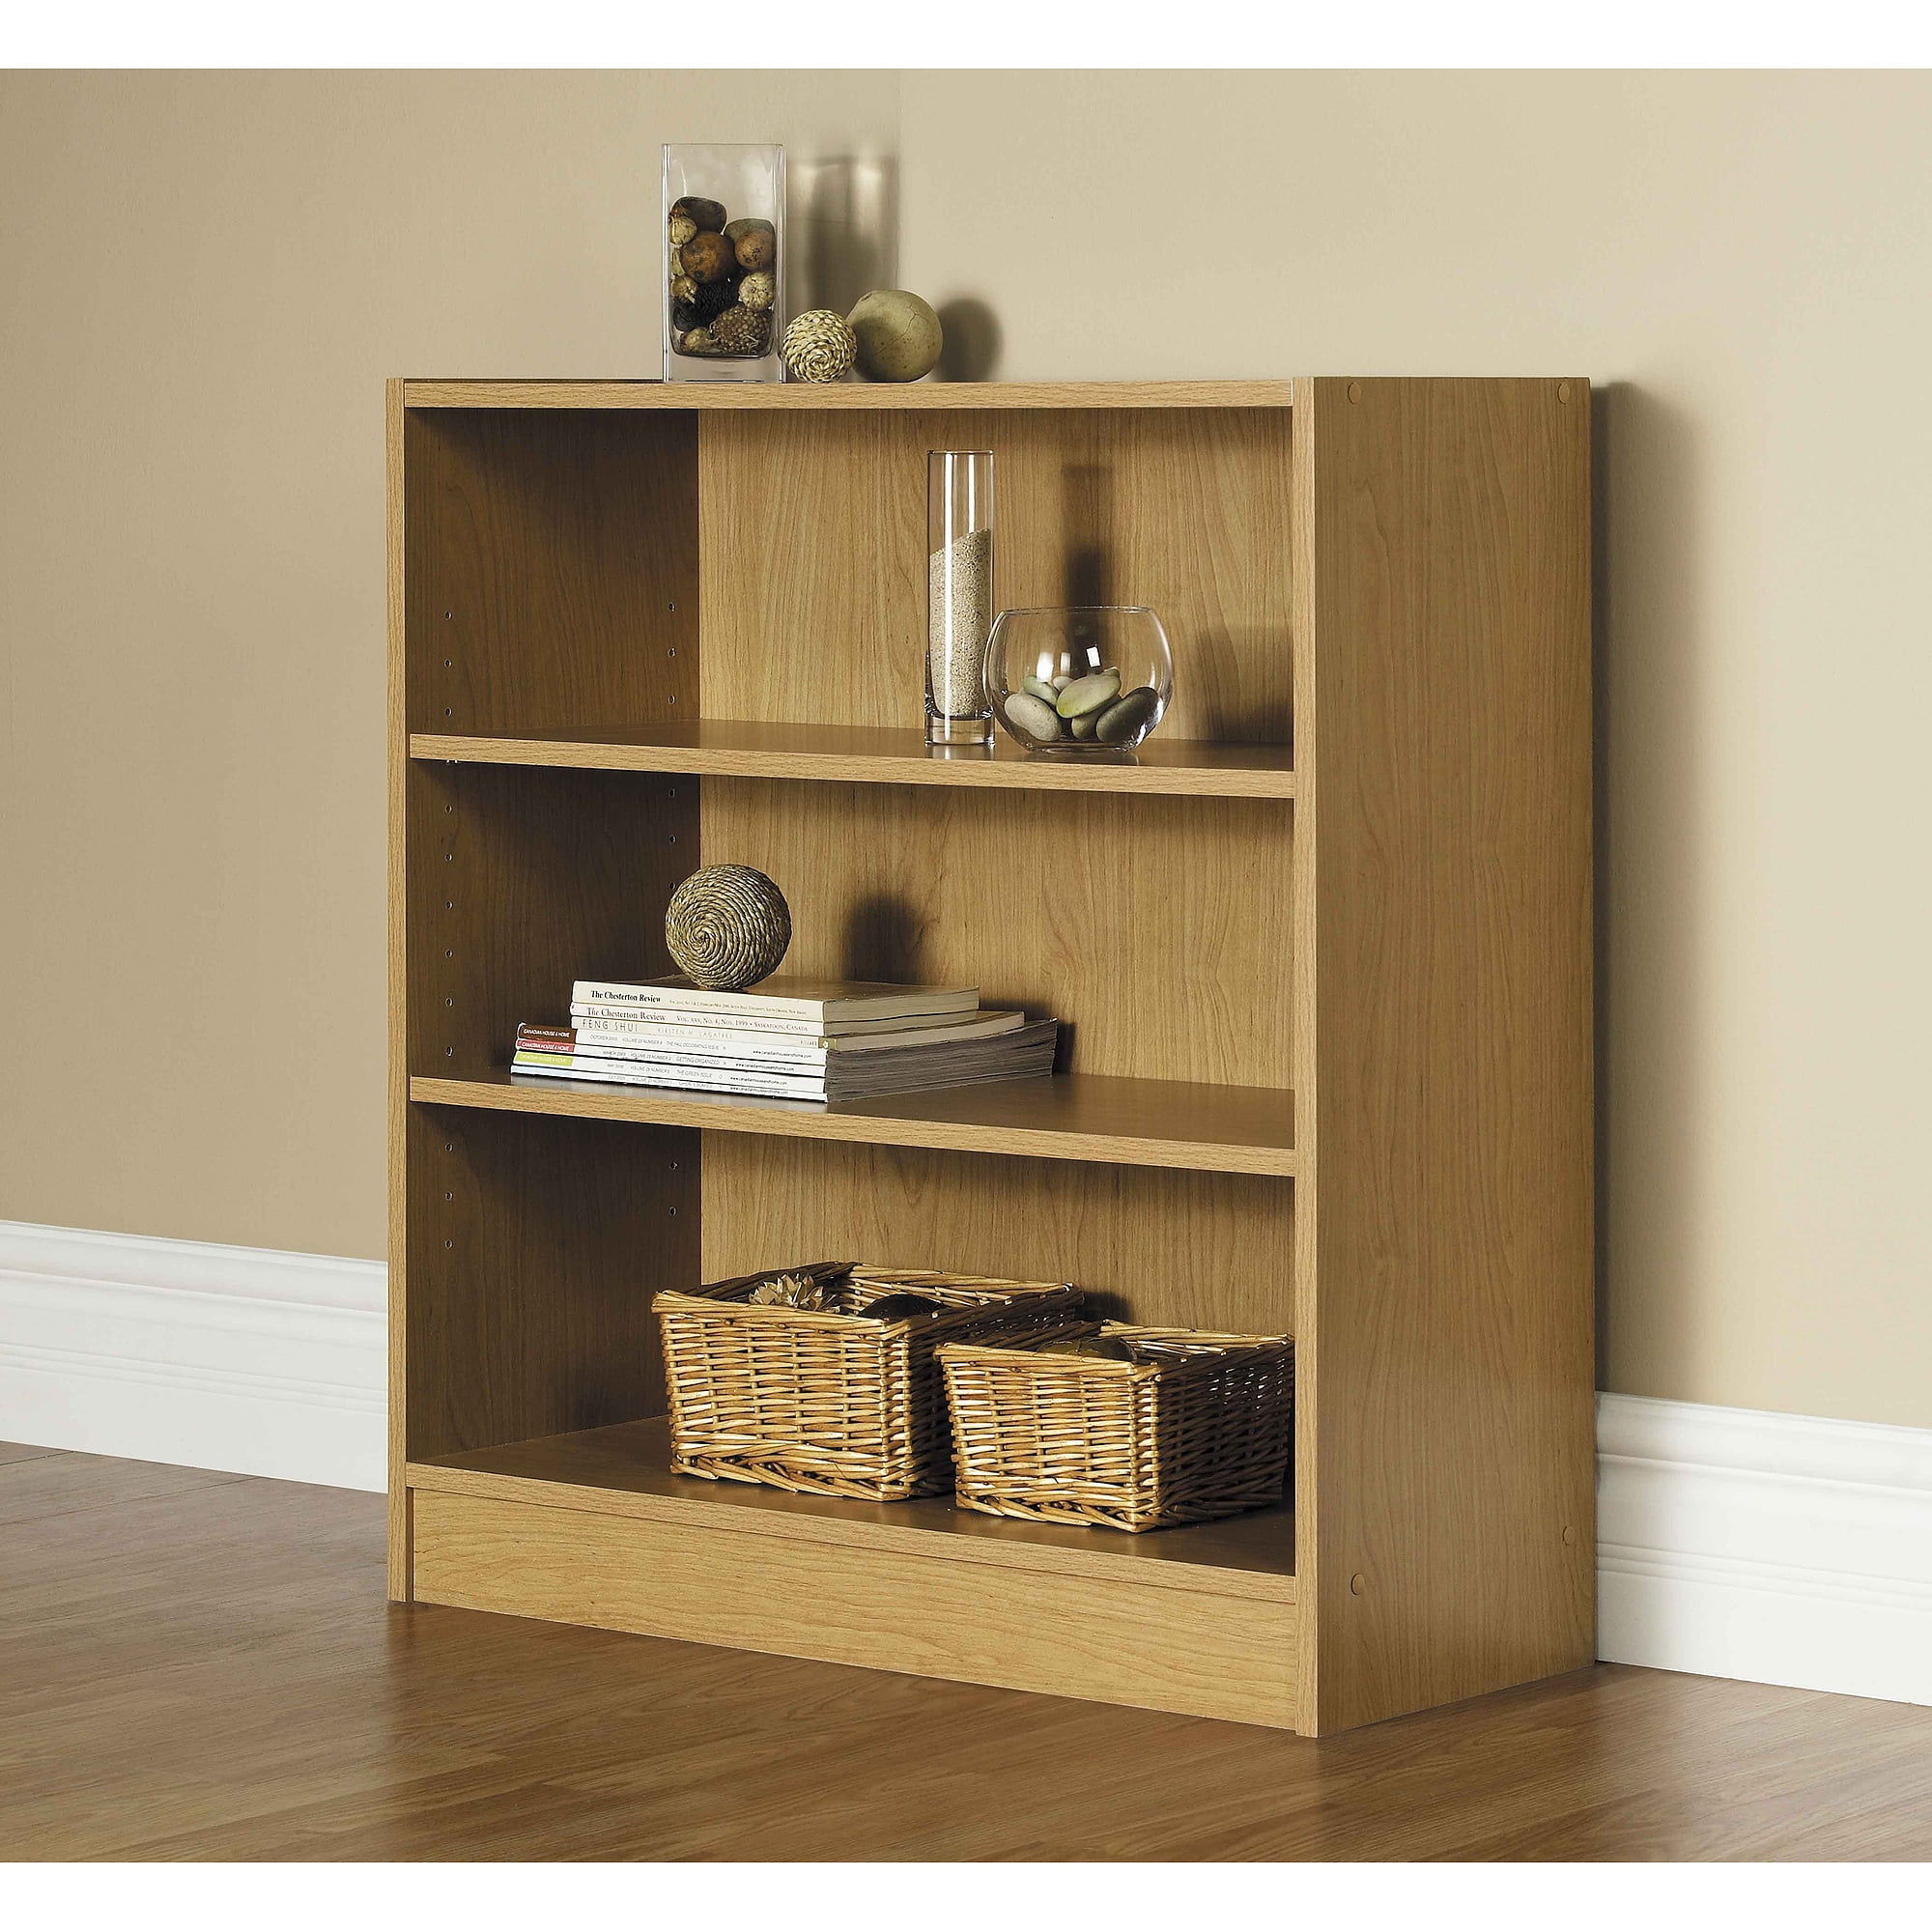 view accent bookcase furniture latest with shelf best bookcases walmart storages of the